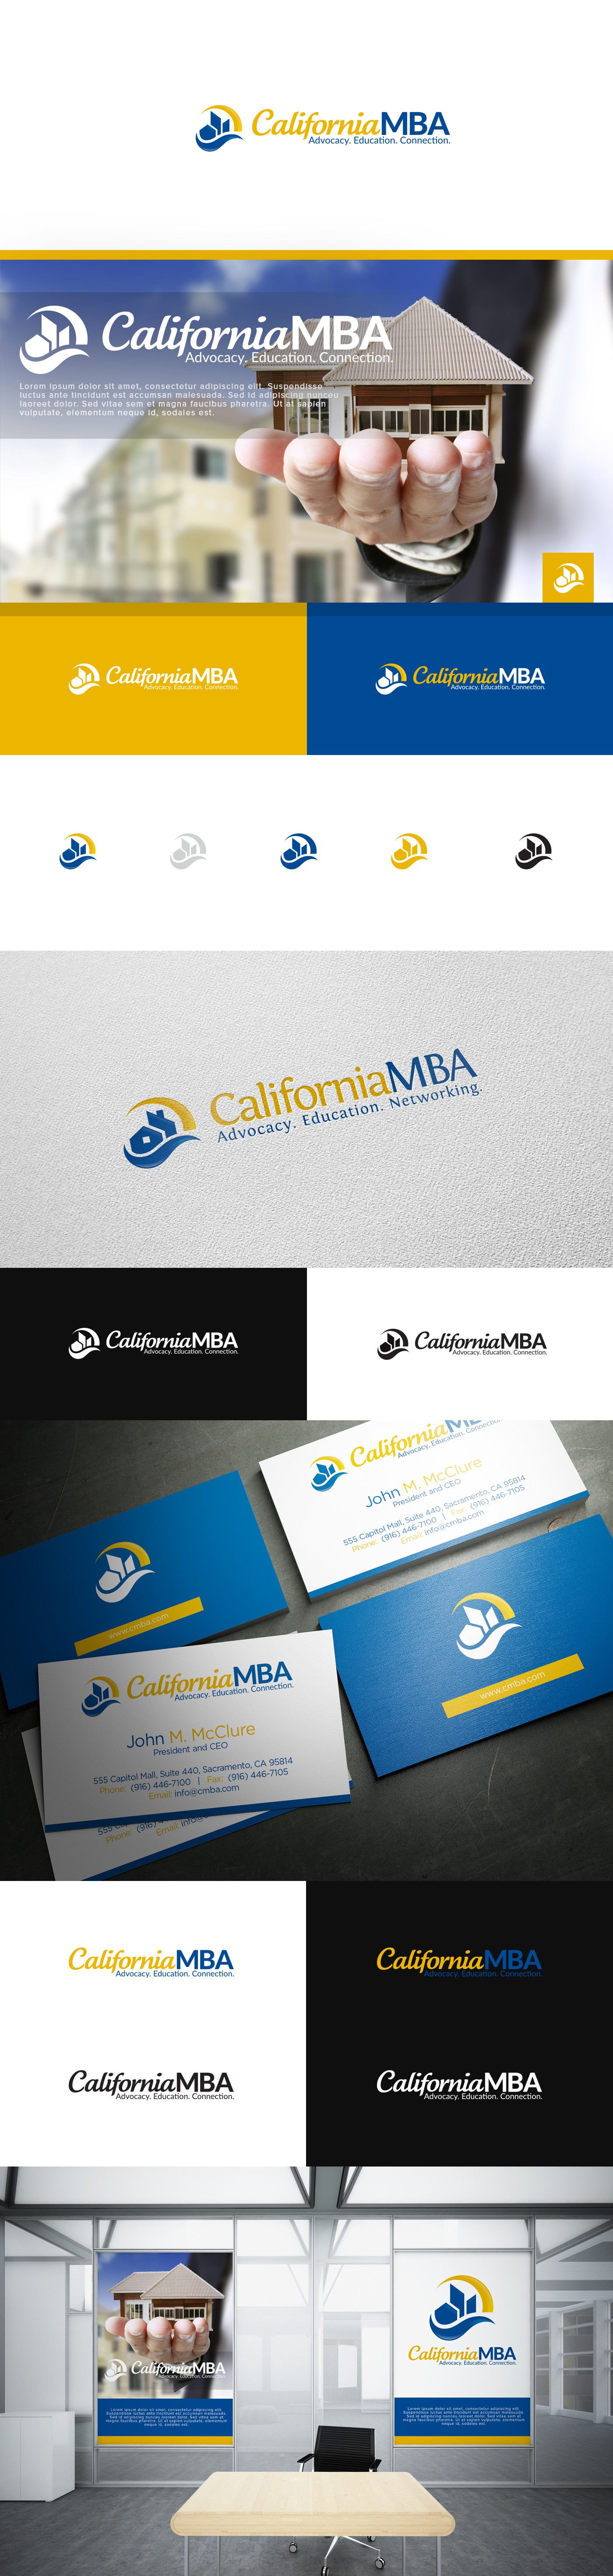 Fresh and Modern Look for California Real Estate/Mortgage Group!